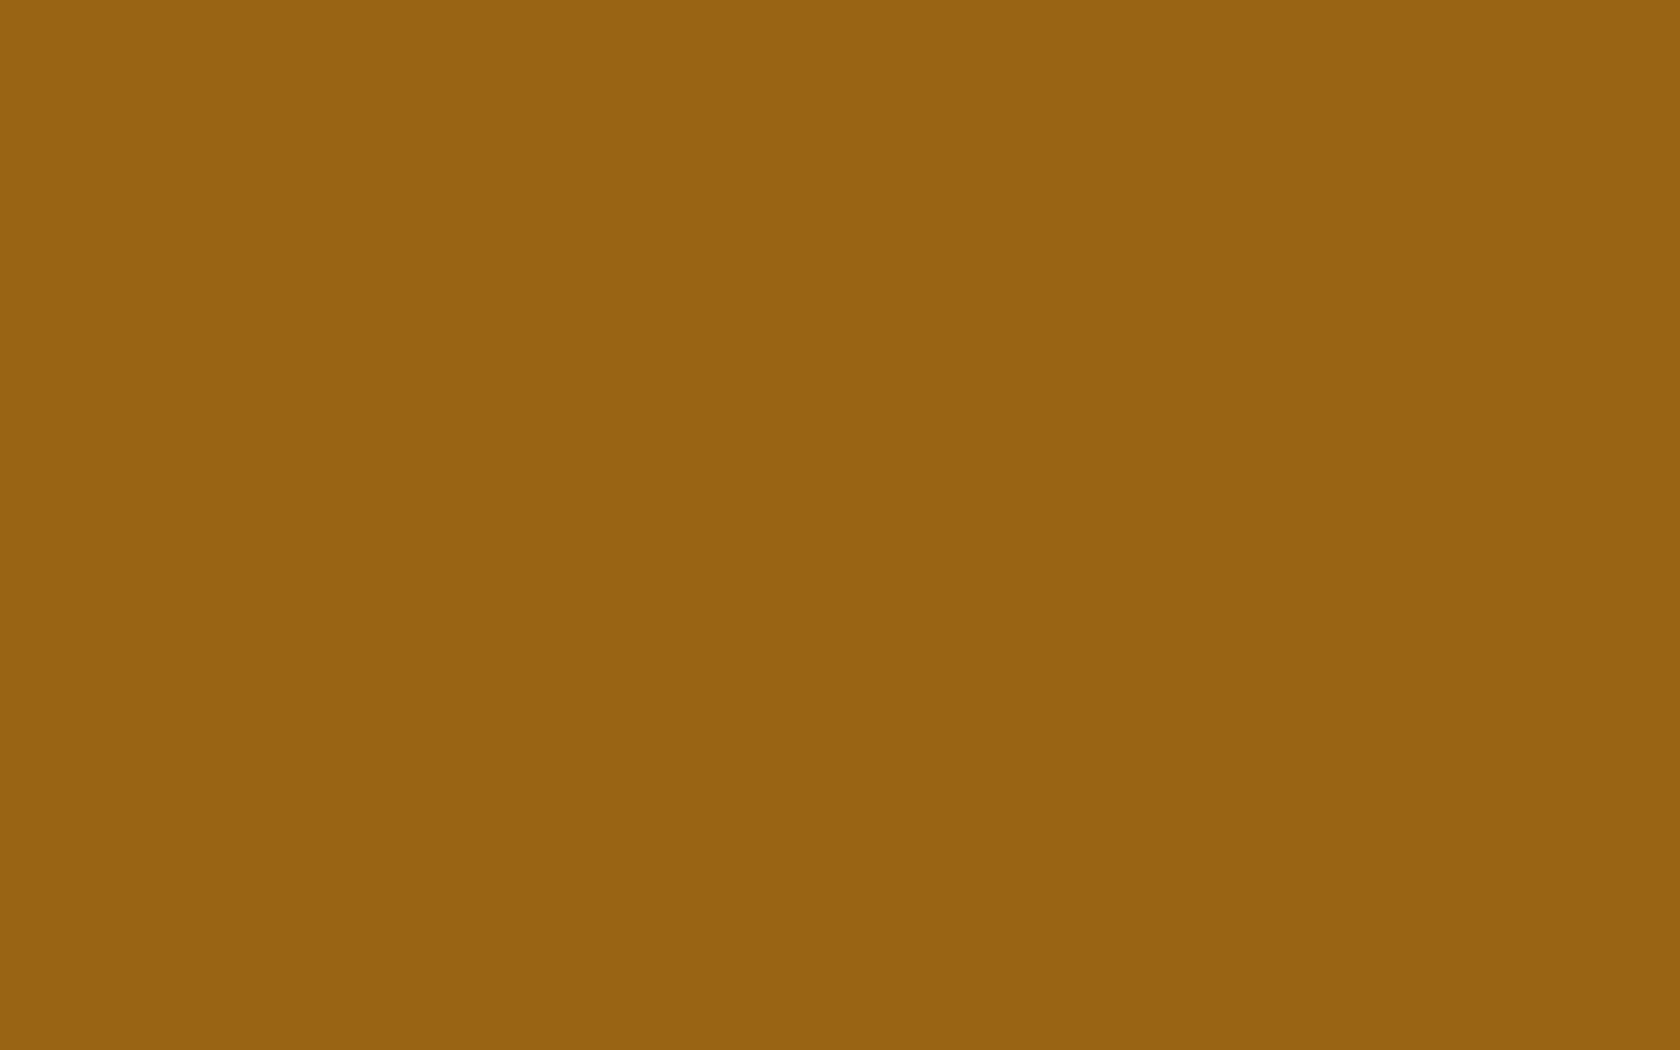 1680x1050 Golden Brown Solid Color Background